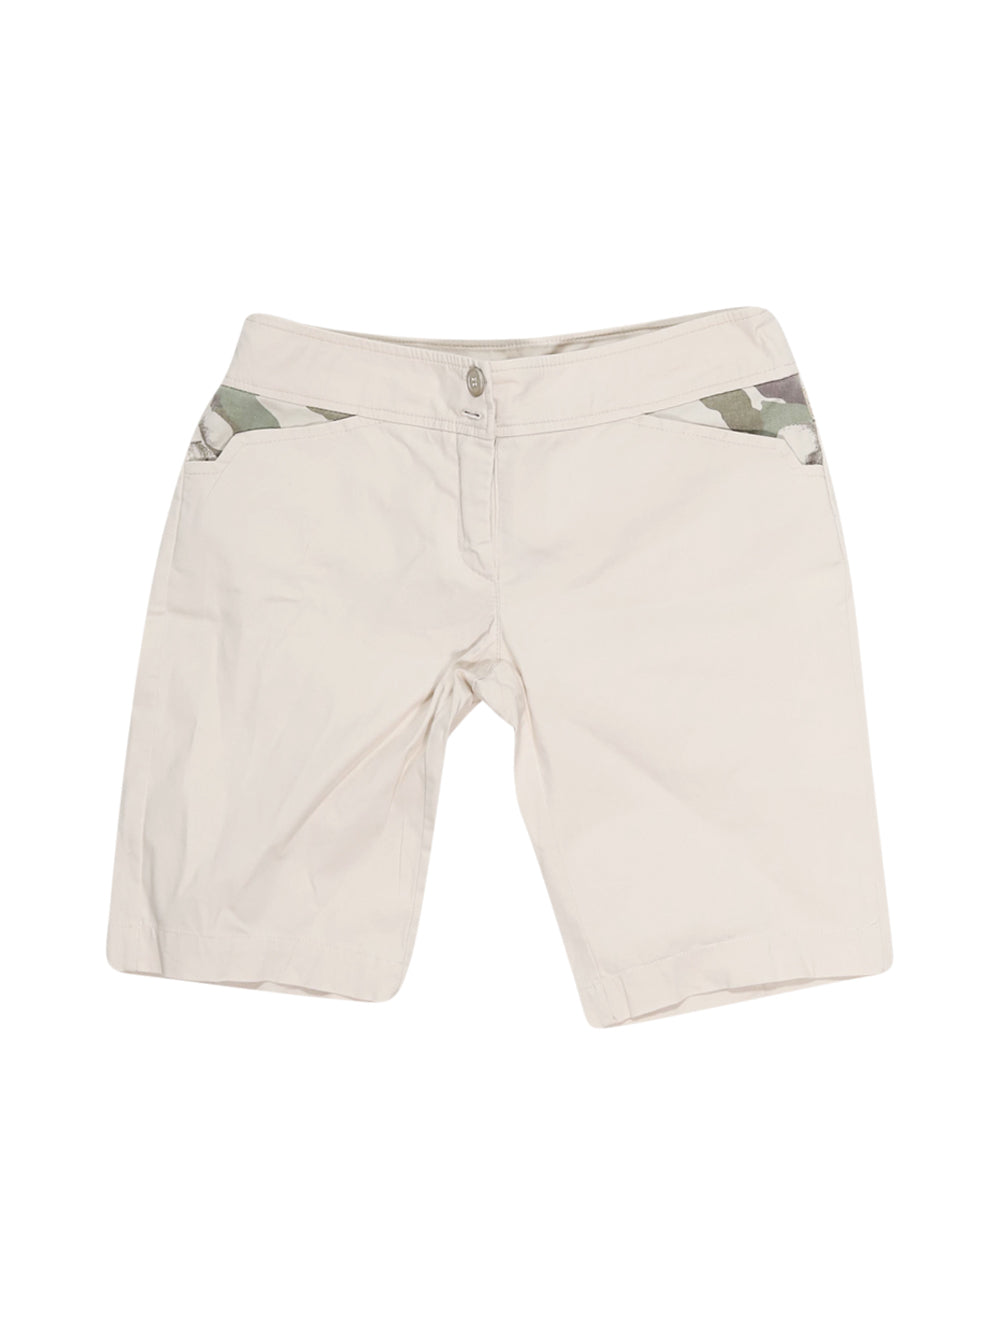 Front photo of Preloved Artigli Beige Woman's shorts - size 12/L